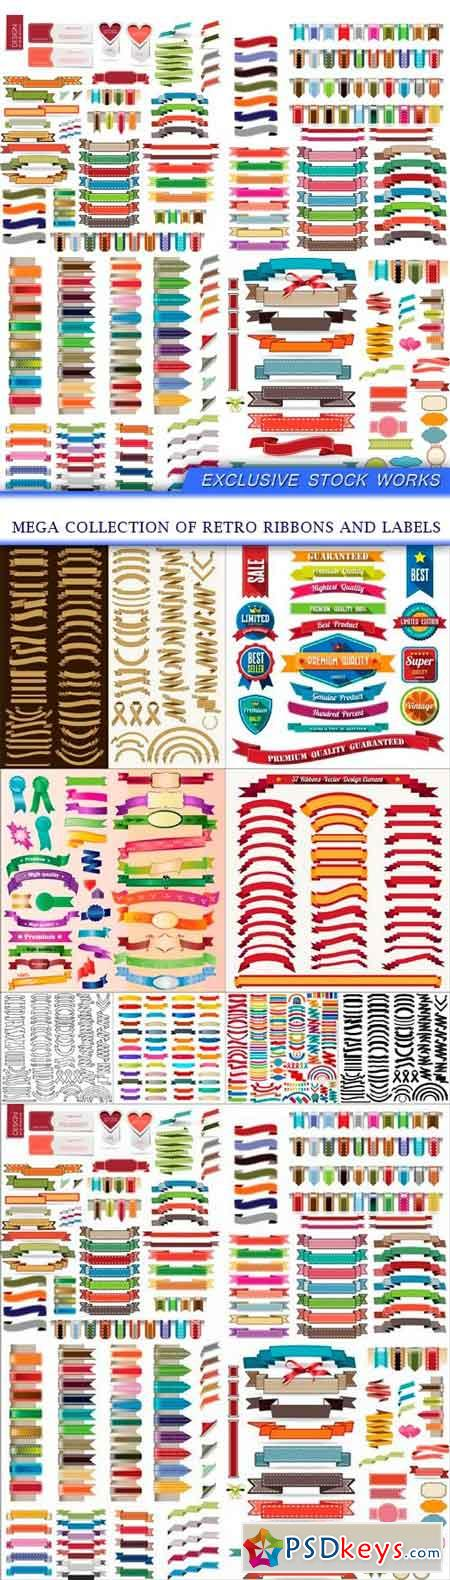 Mega collection of retro ribbons and labels 9x EPS